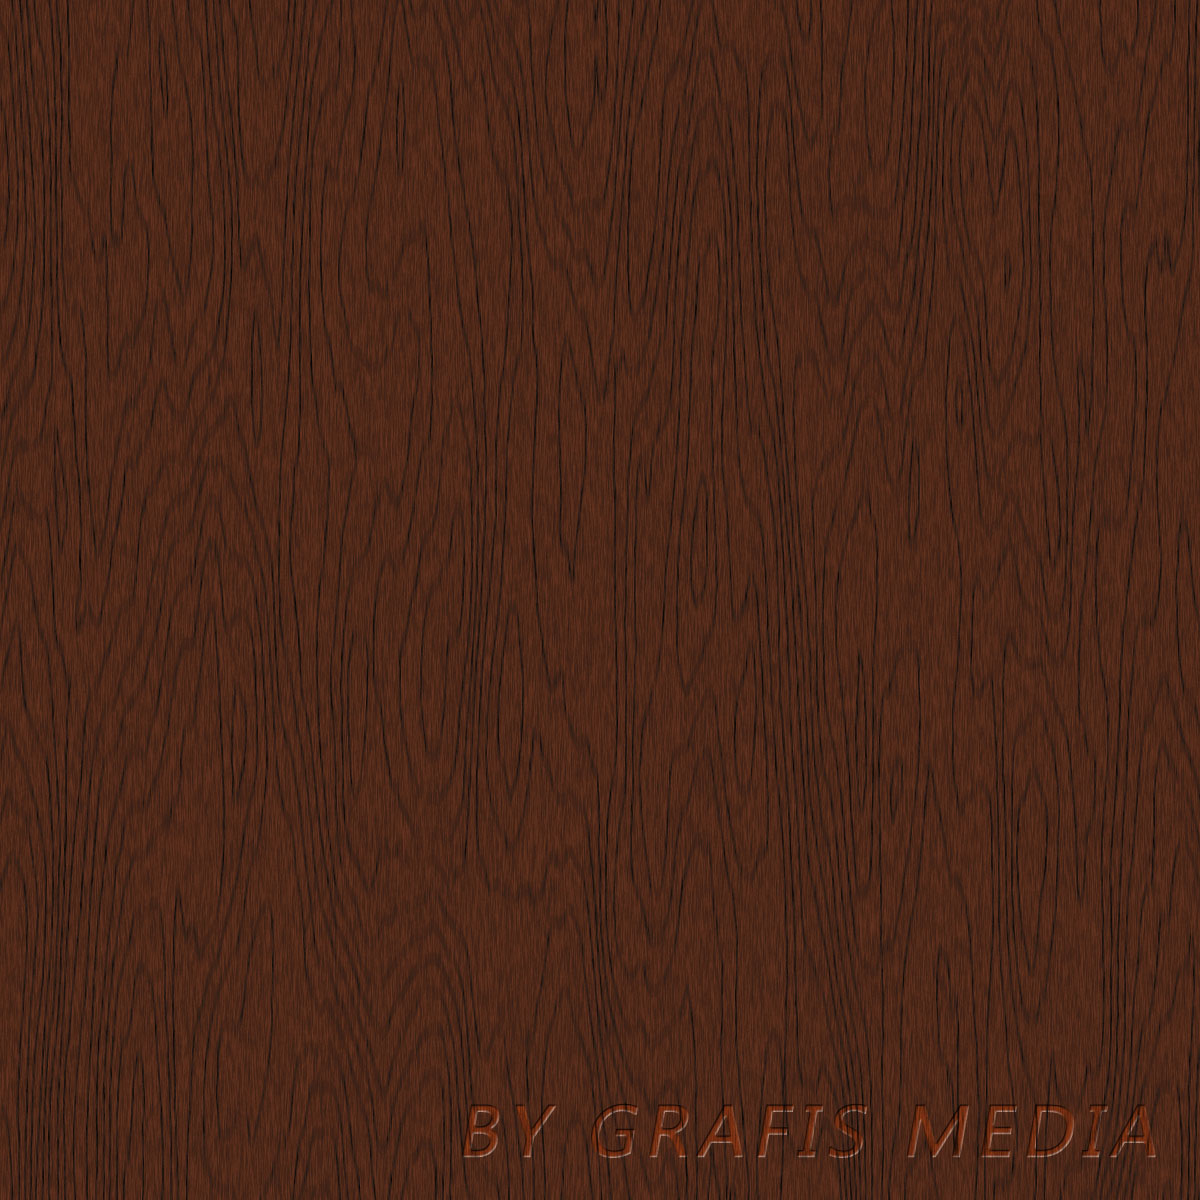 Background Kayu Warna Coklat Cara Membuat Texture Kayu Di Photoshop Indoint